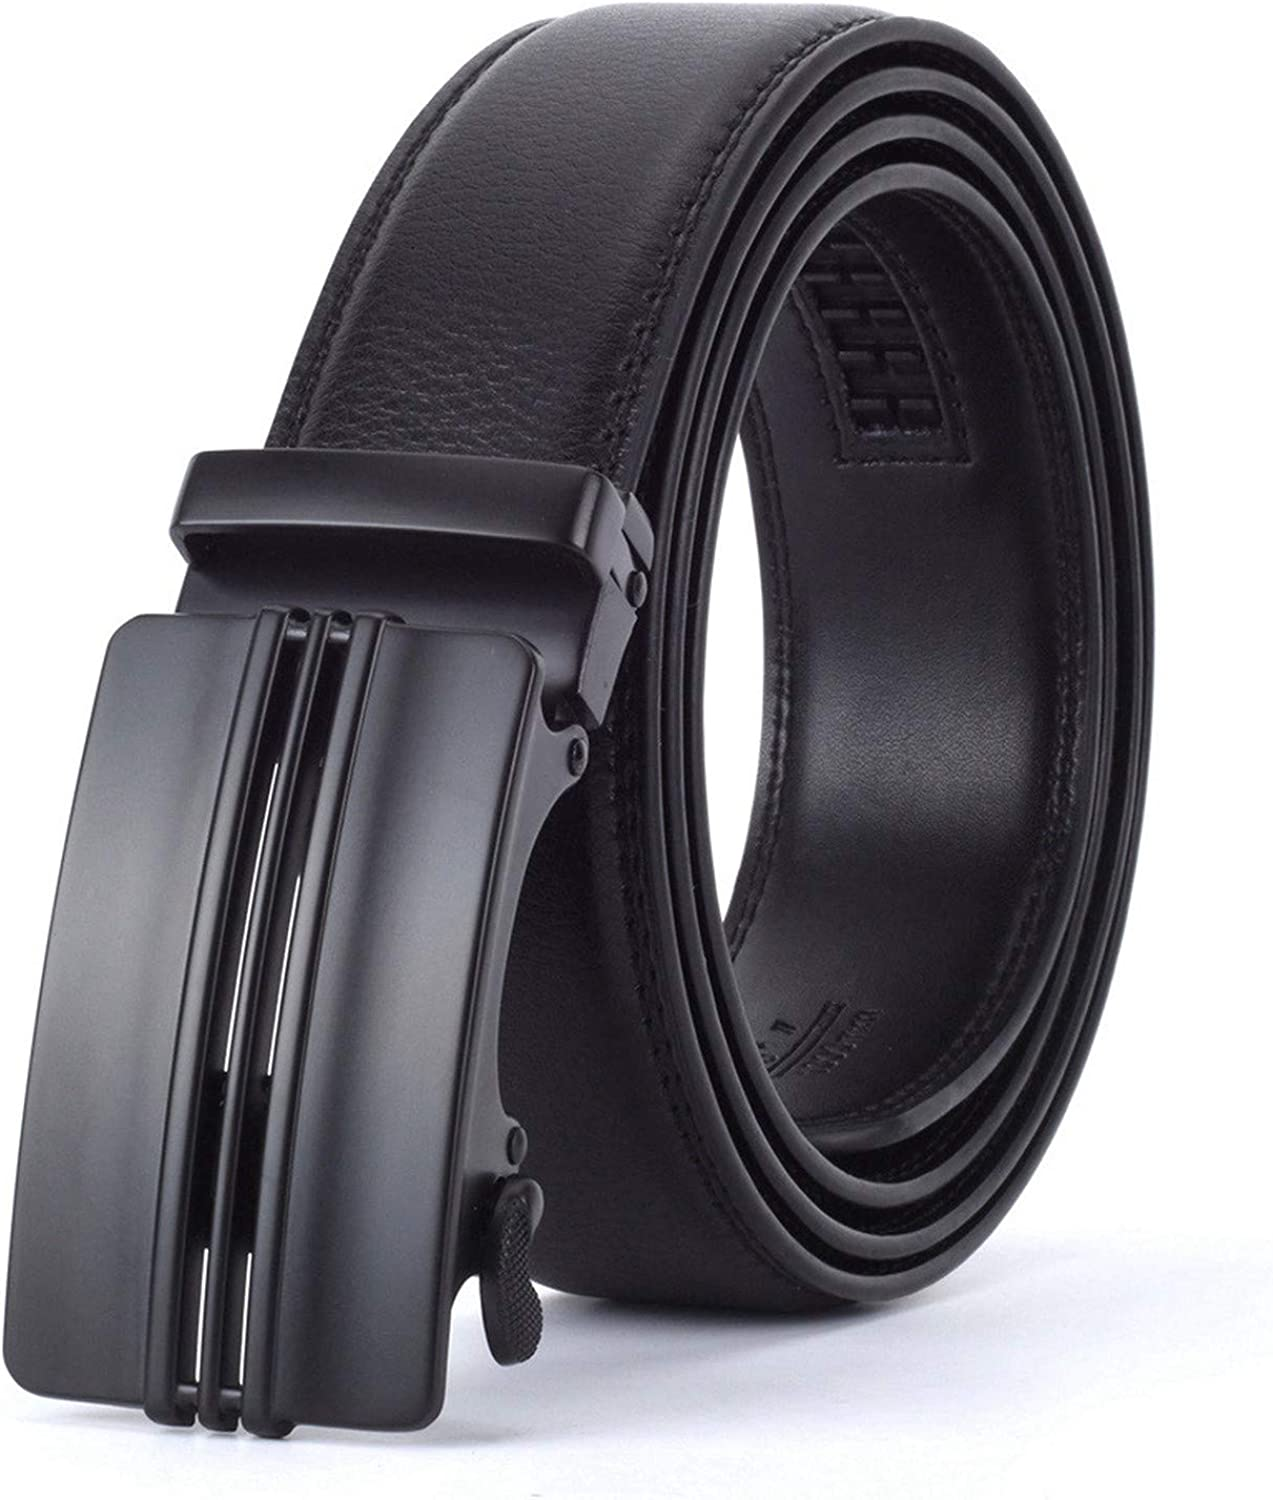 Men Automatic Buckle Leather luxury Belt Business Male Alloy buckle Belts for Men Ceinture Homme,M,110cm